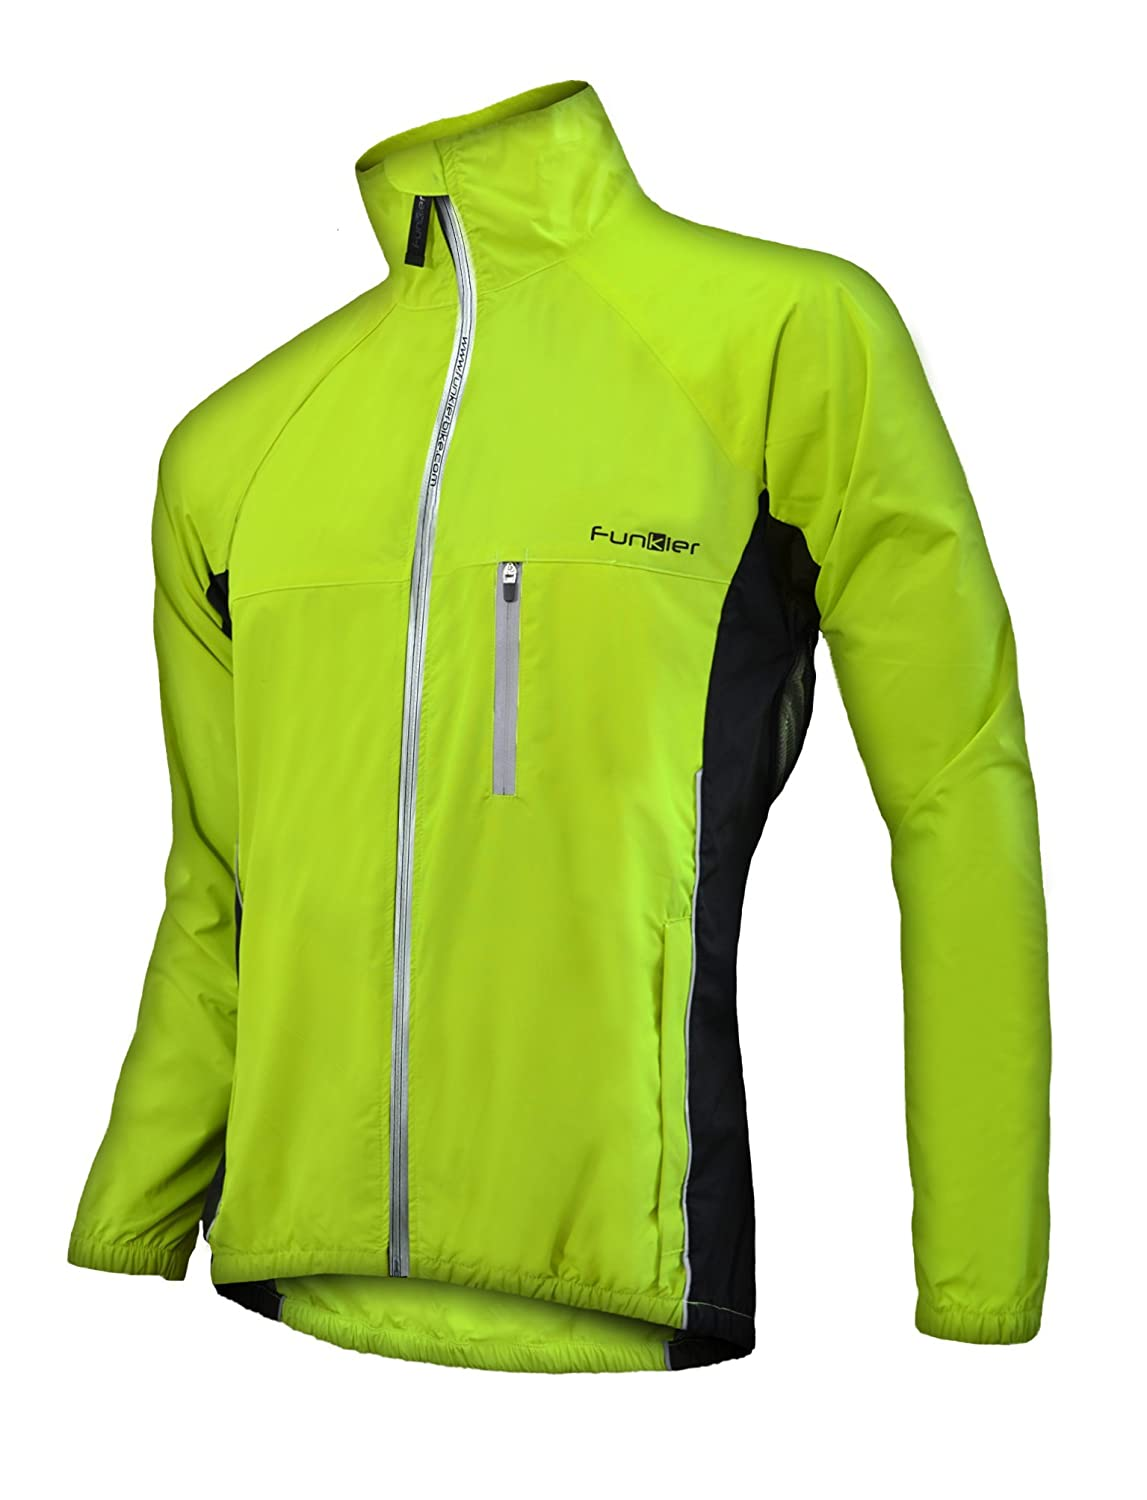 Amazon.com : Funkier Bike Men's Cycling Rain Jacket, Reflective ...